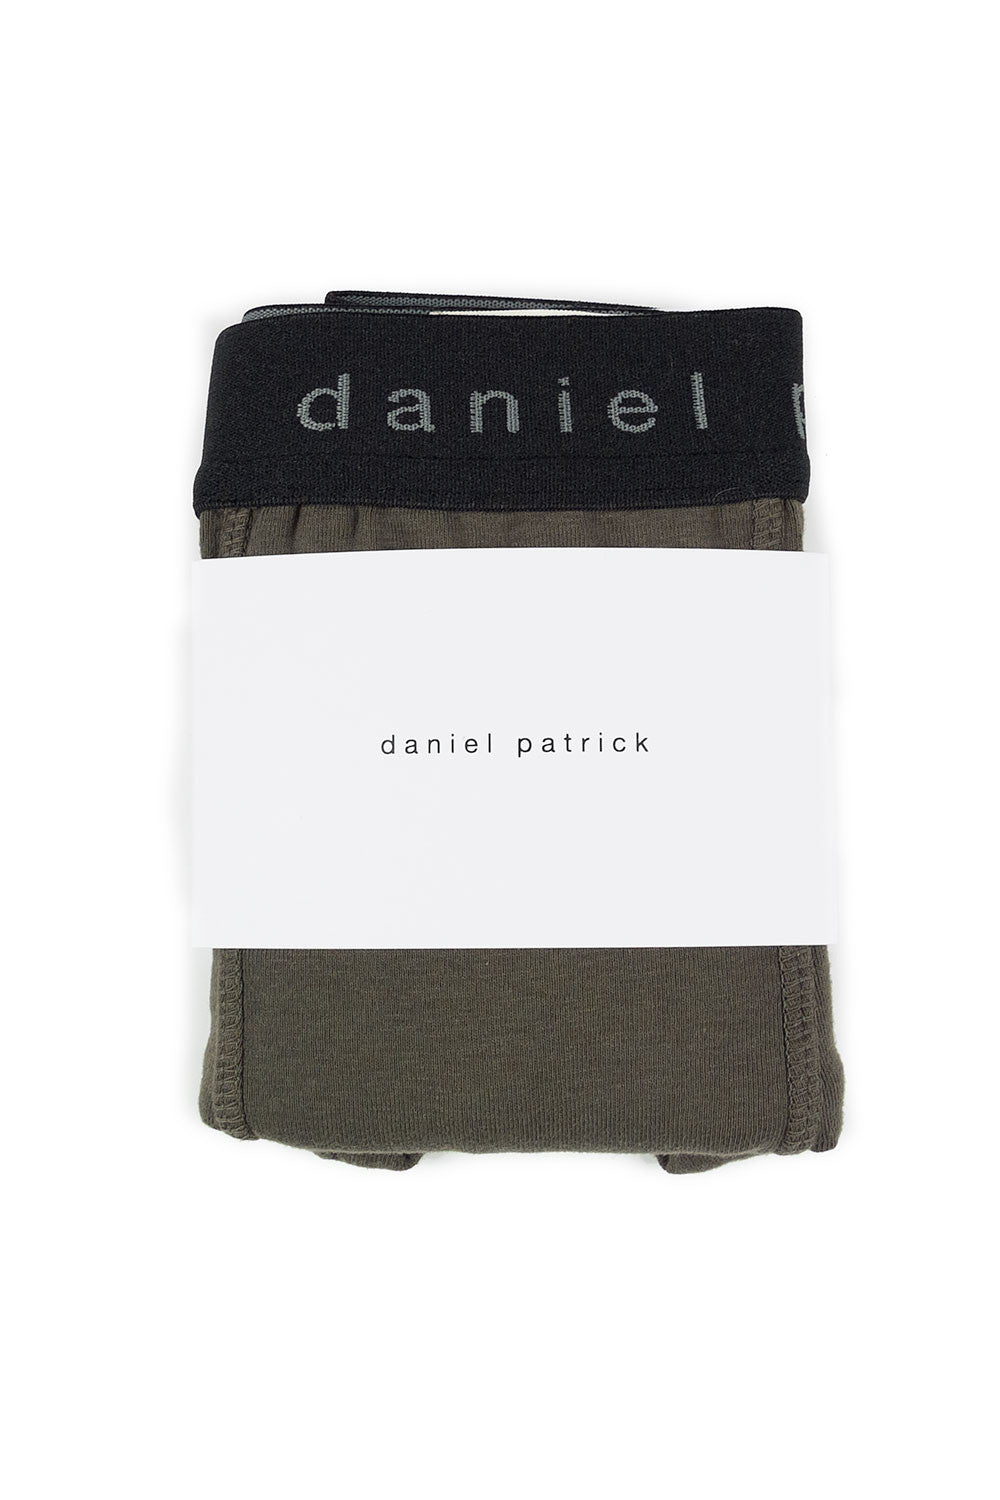 designer boxer brief pack in army by daniel patrick